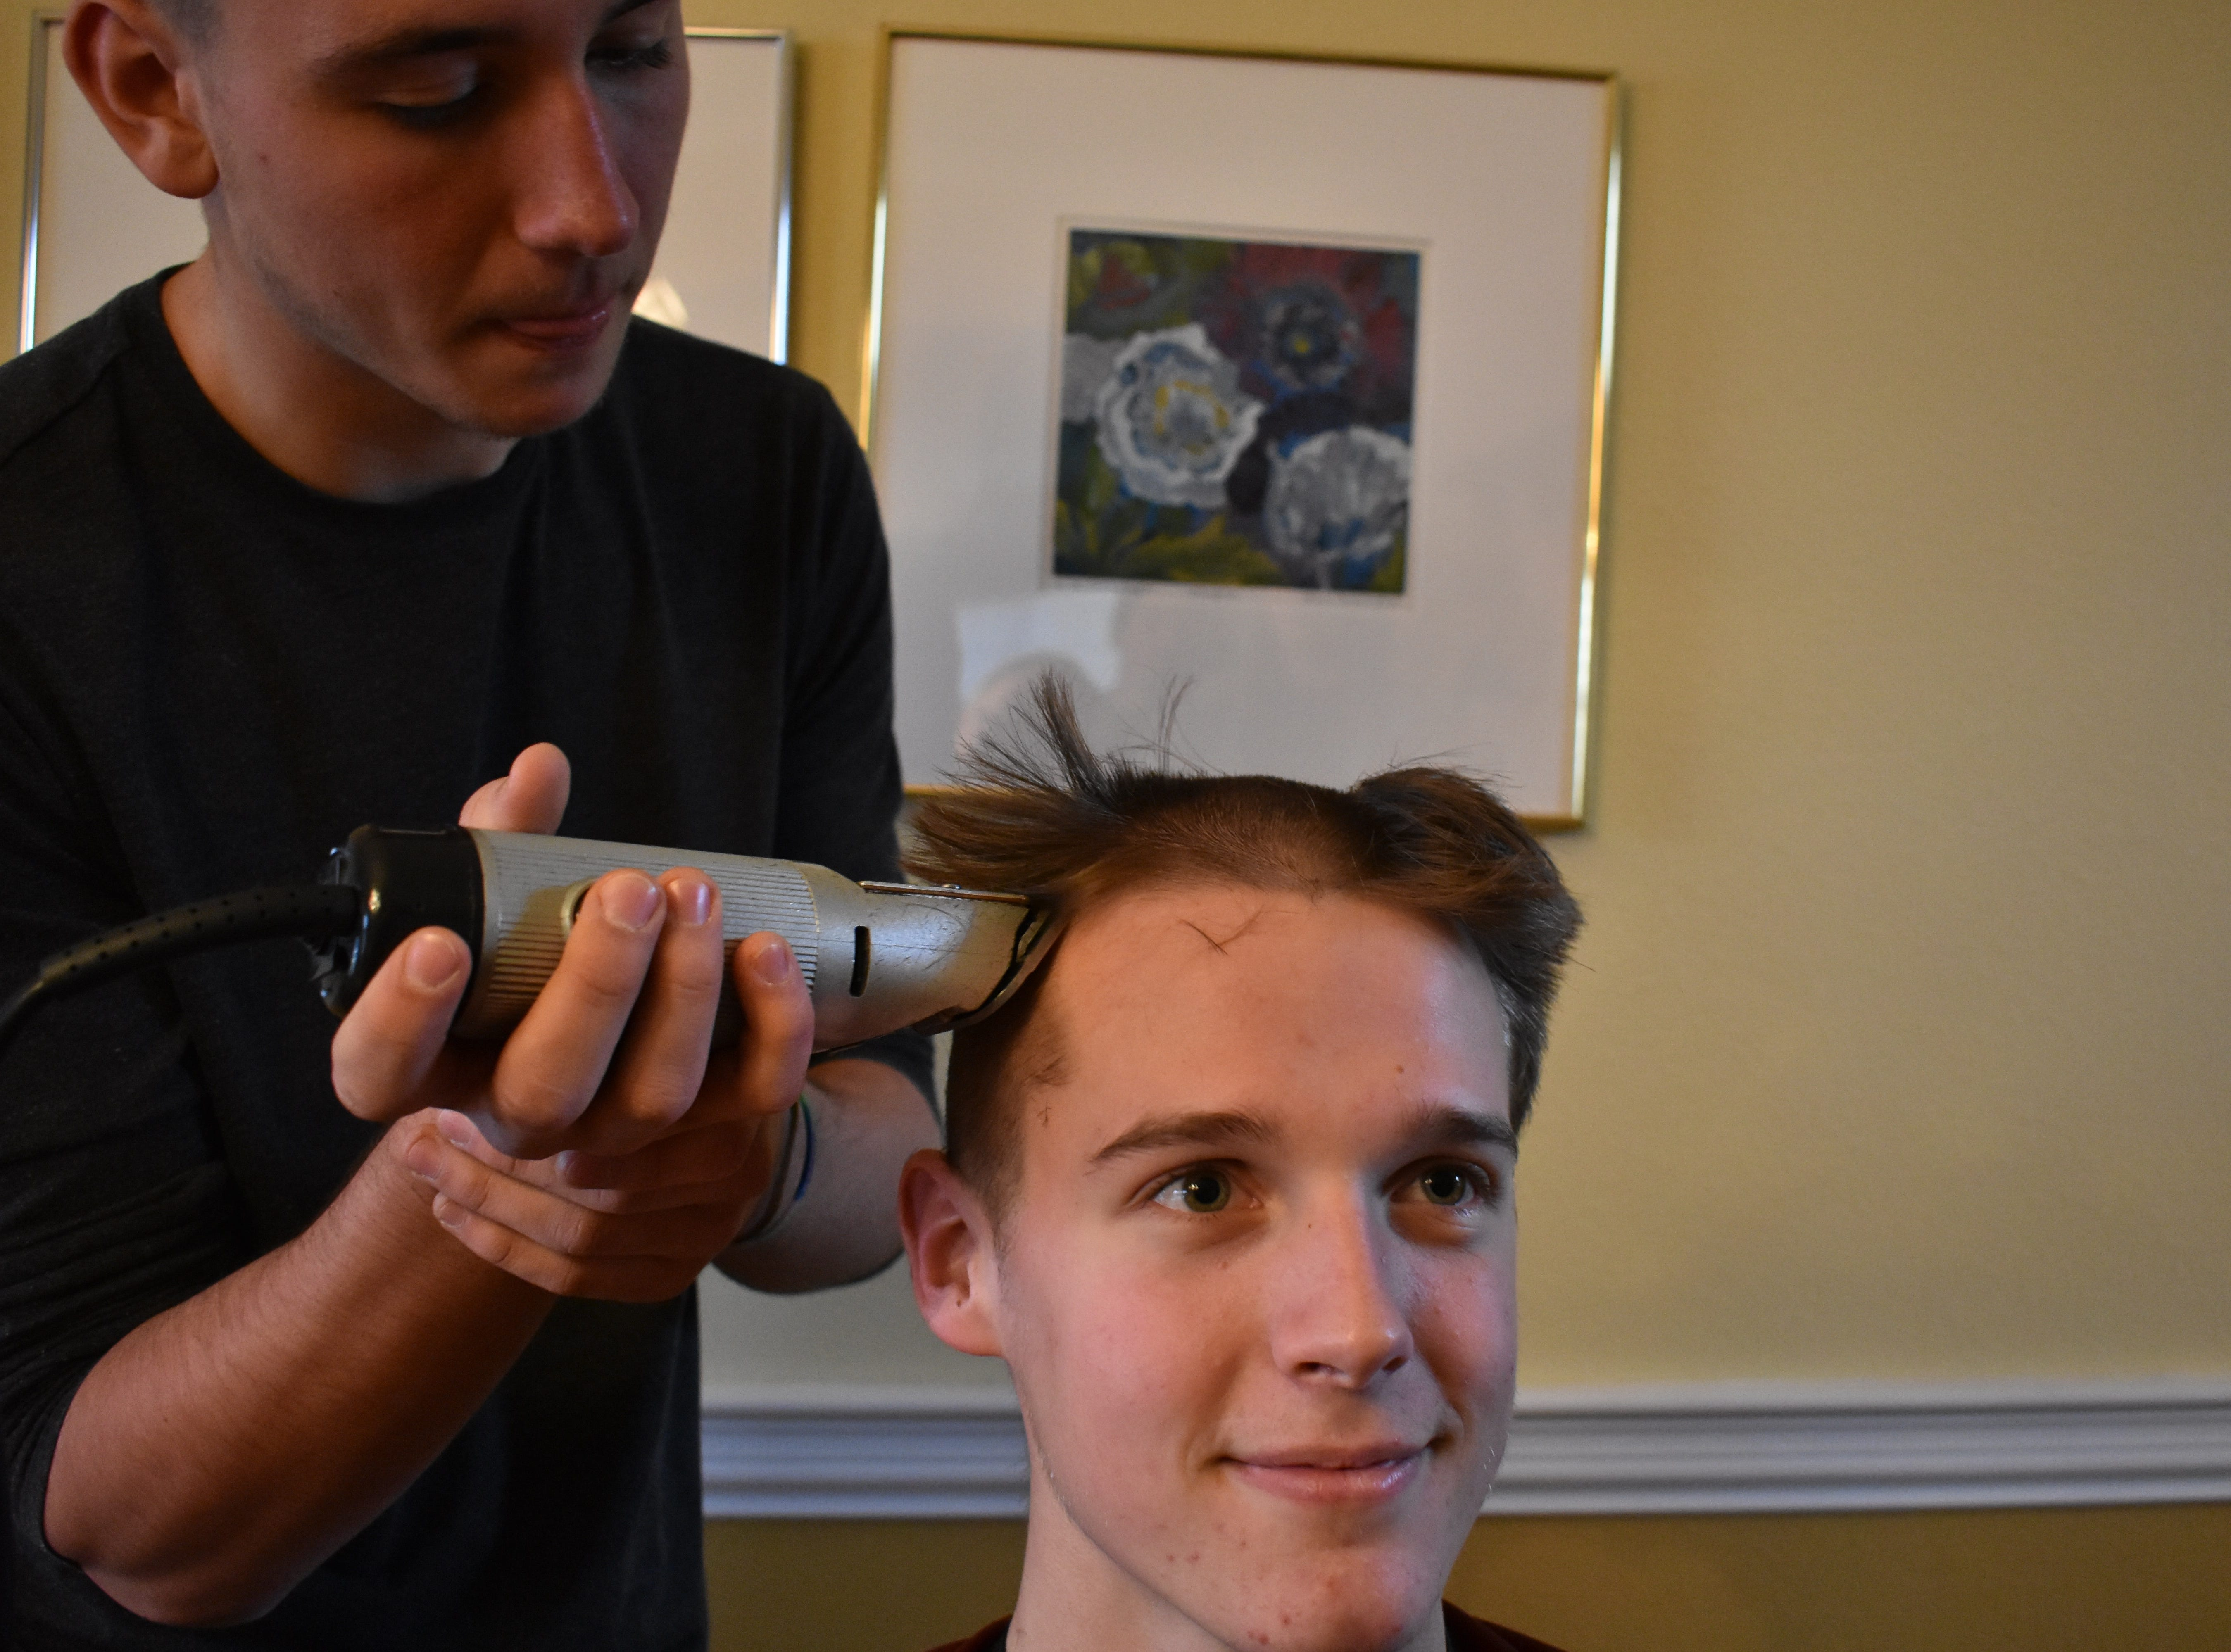 Joe Urynowicz shaves the head of Kenan Schuler Dec. 31, 2018, in support of teammate Carter Edgerely, who was recently diagnosed with bone cancer.